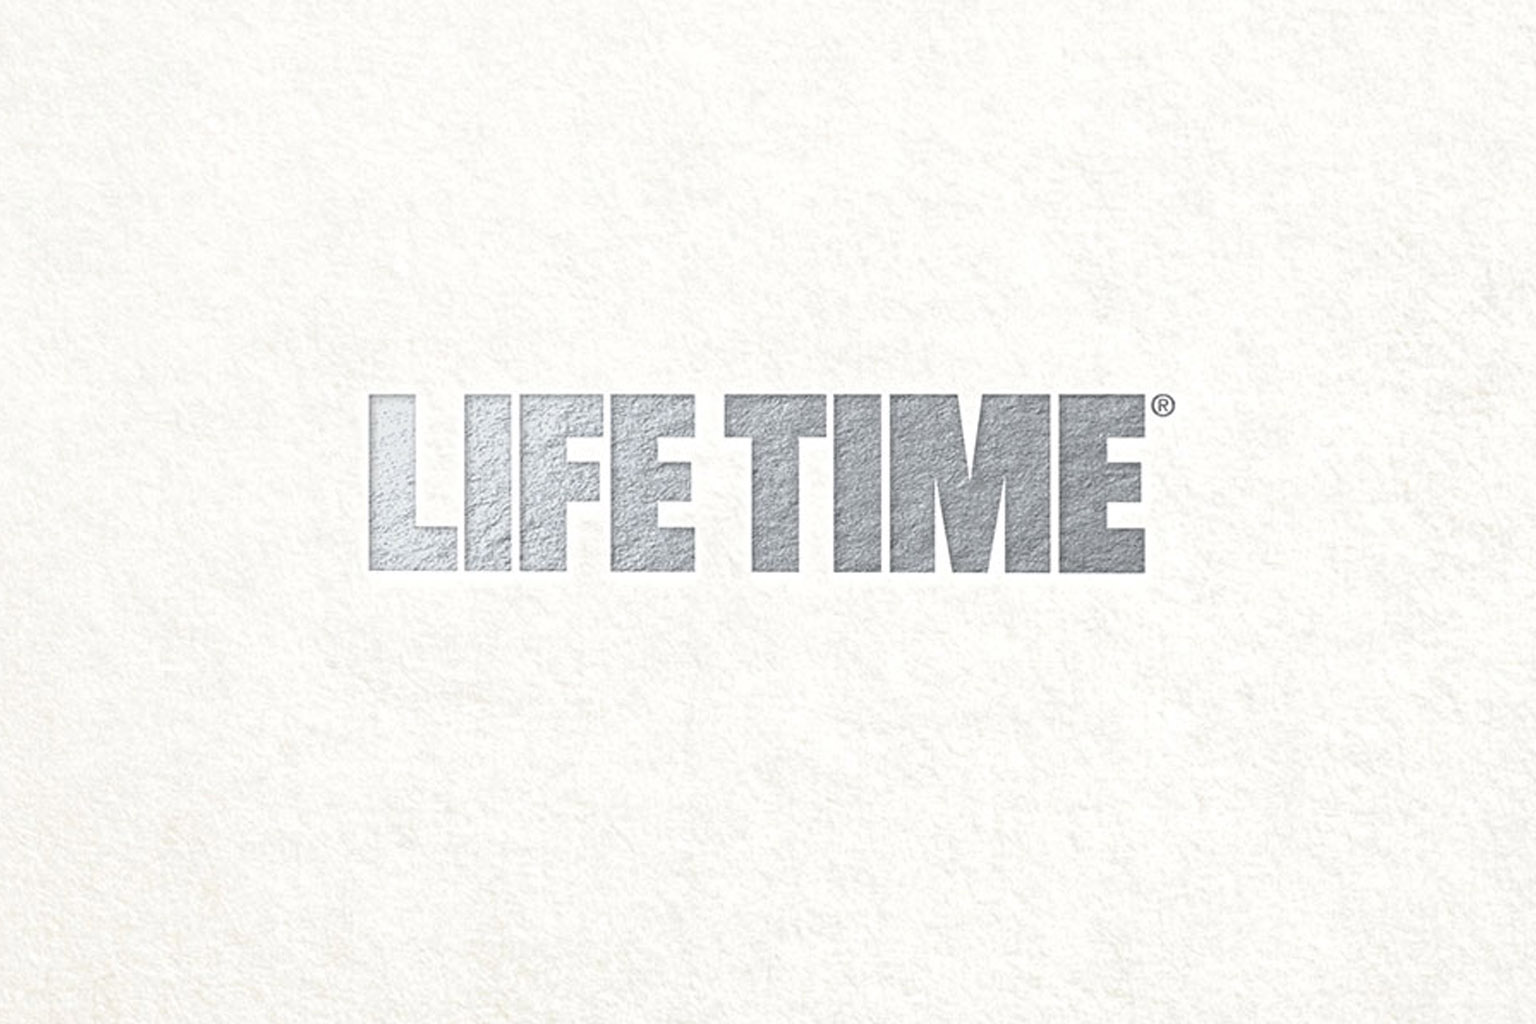 Silver Life Time master logo on a white paper background